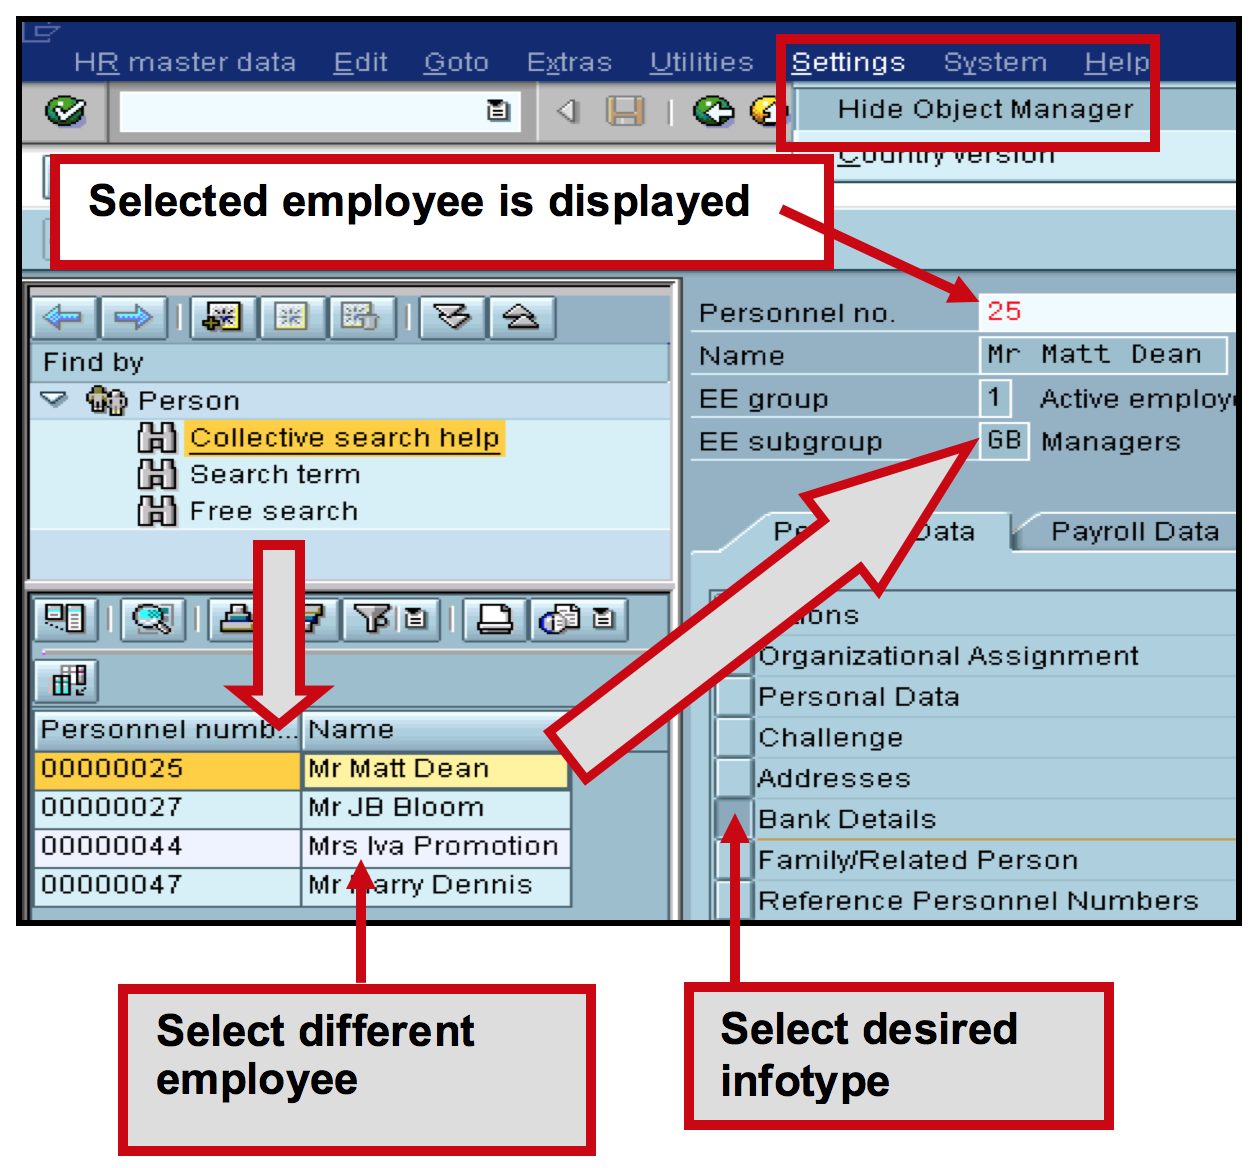 Infotype selection per employee